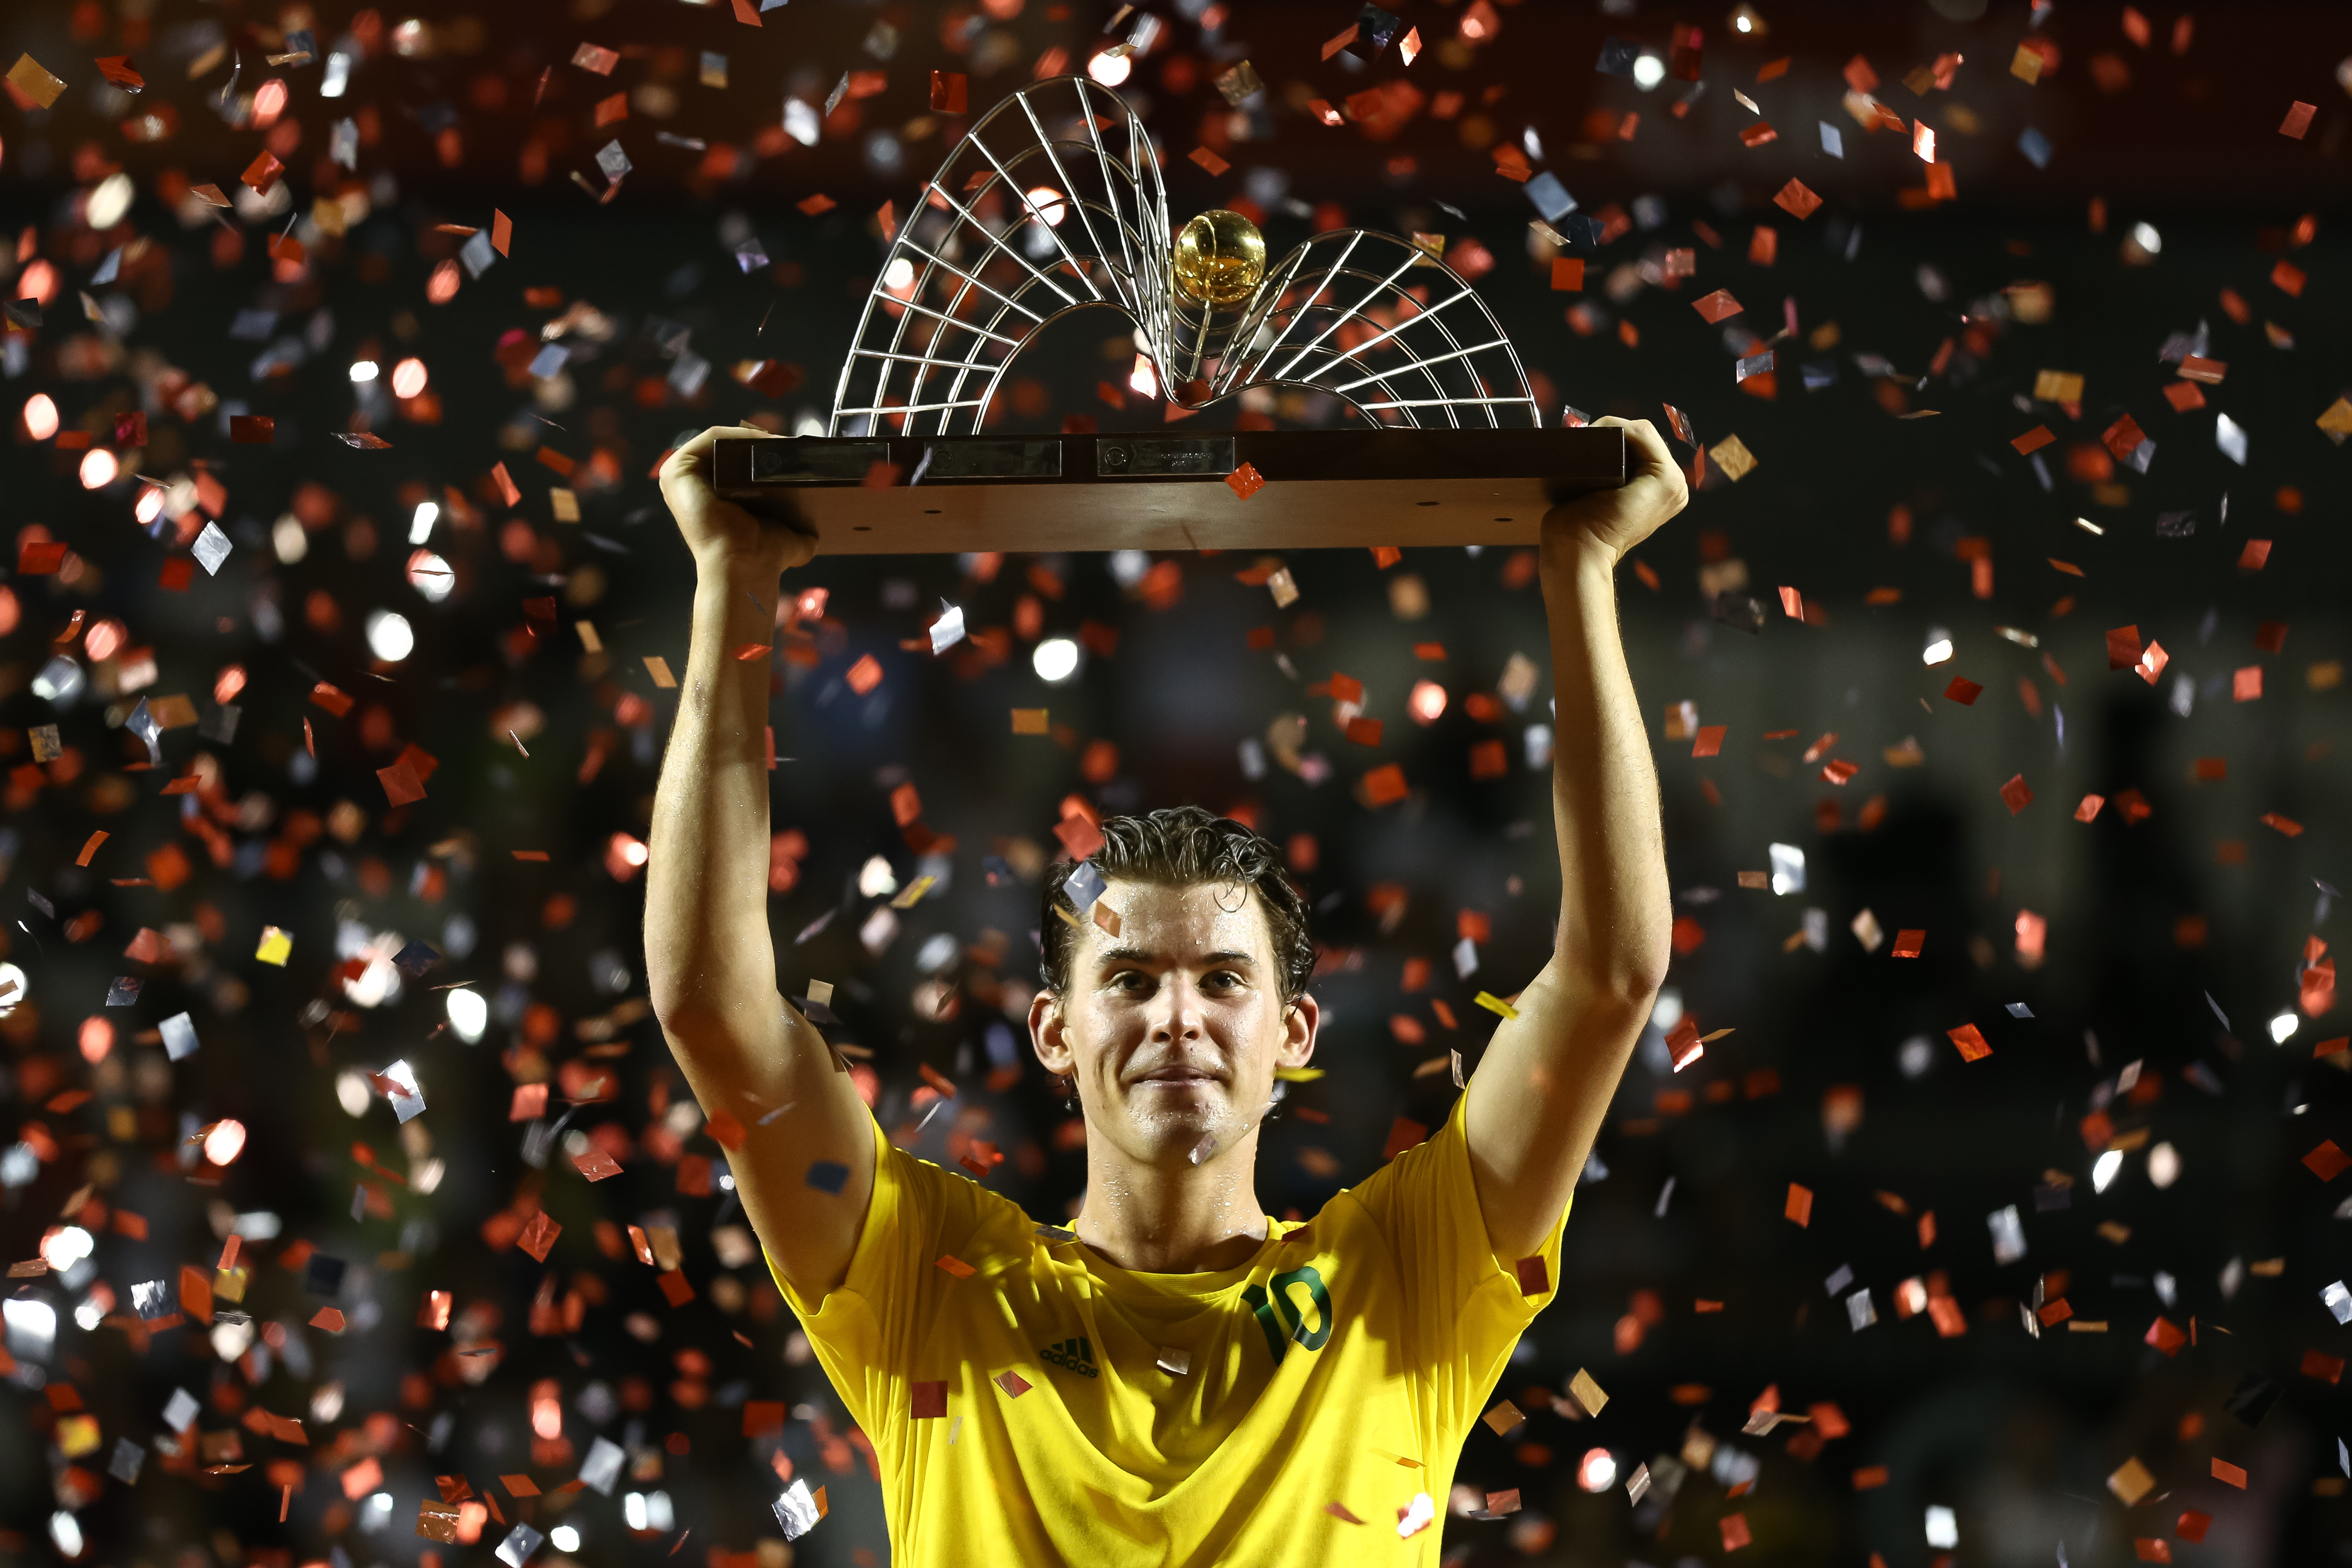 RIO DE JANEIRO, BRAZIL - FEBRUARY 26: Dominic Thiem of Austria raises his trophy after defeating Pablo Carreno Busta of Spain during the Final of the ATP Rio Open 2017 at Jockey Club Brasileiro on February 26, 2017 in Rio de Janeiro, Brazil. (Photo by Buda Mendes/Getty Images)